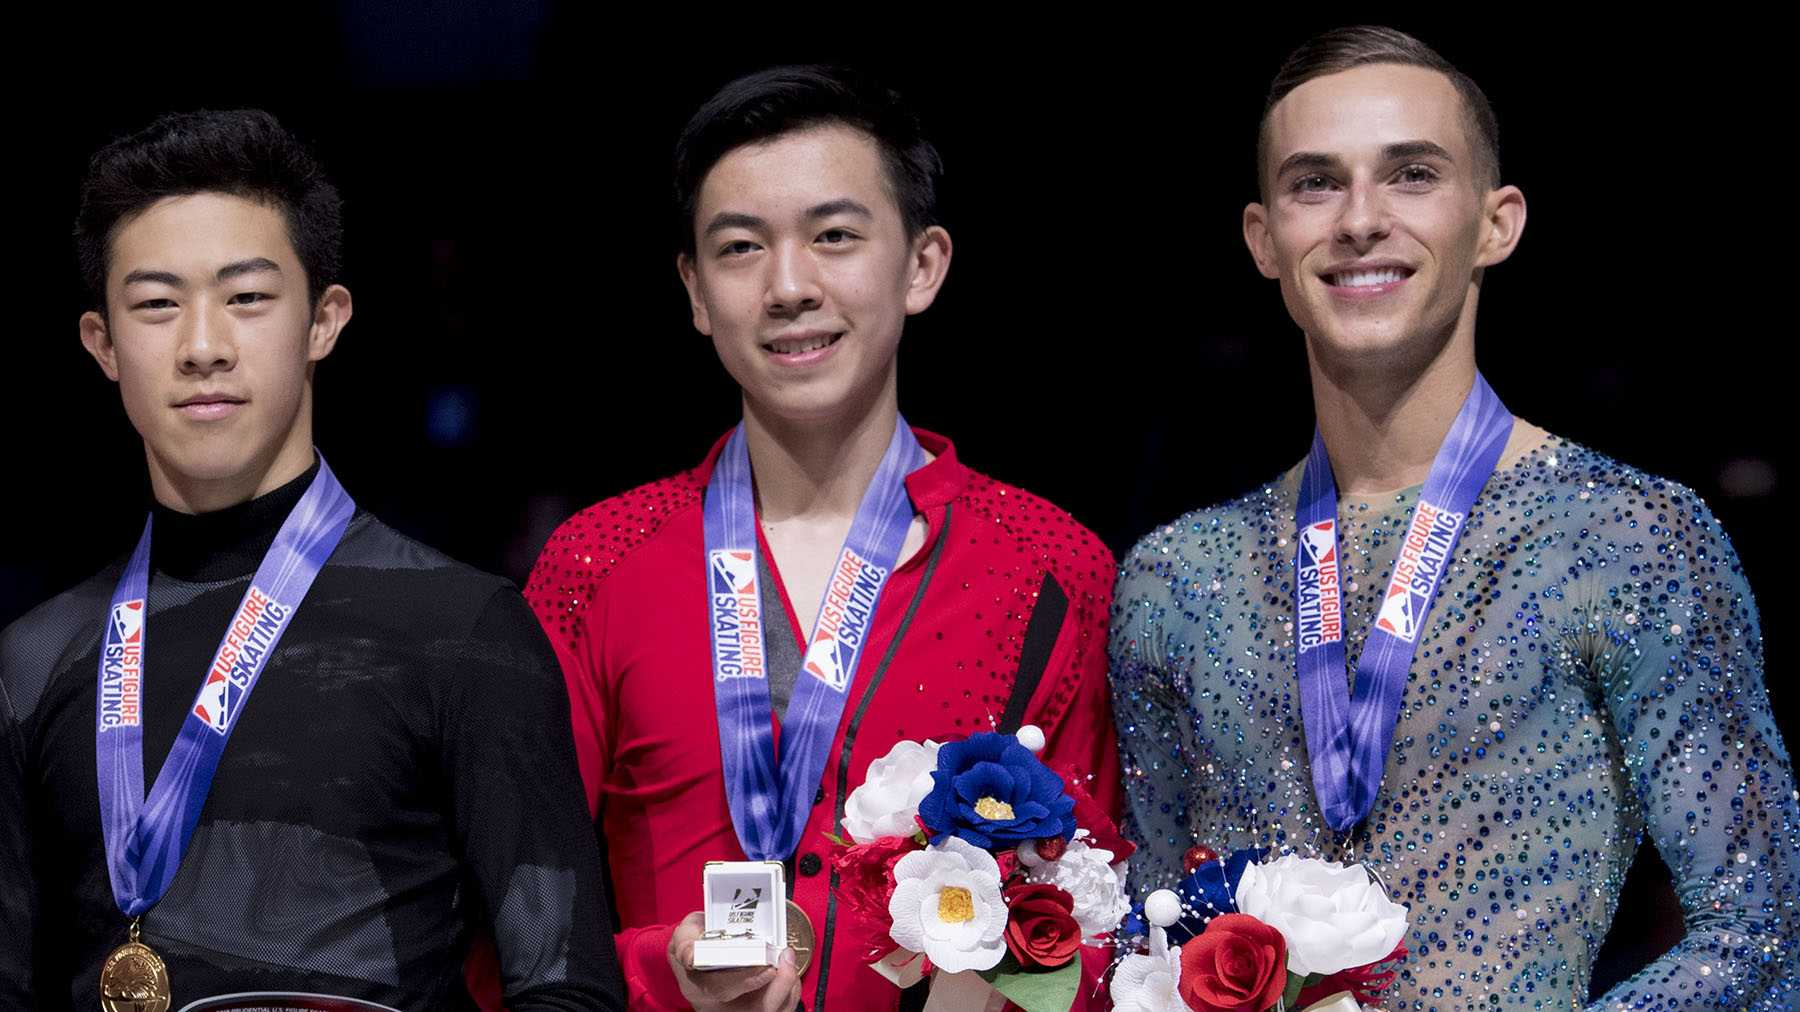 January 6, 2018&#x3B; San Jose, CA, USA&#x3B; (L-R) Second place Ross Miner, first place Nathan Chen, third place Vincent Zhou, and fourth place Adam Rippon pose for a photo after the men's free skate program during the 2018 U.S. Figure Skating Championships at SAP Center. Mandatory Credit: Kyle Terada-USA TODAY Sports